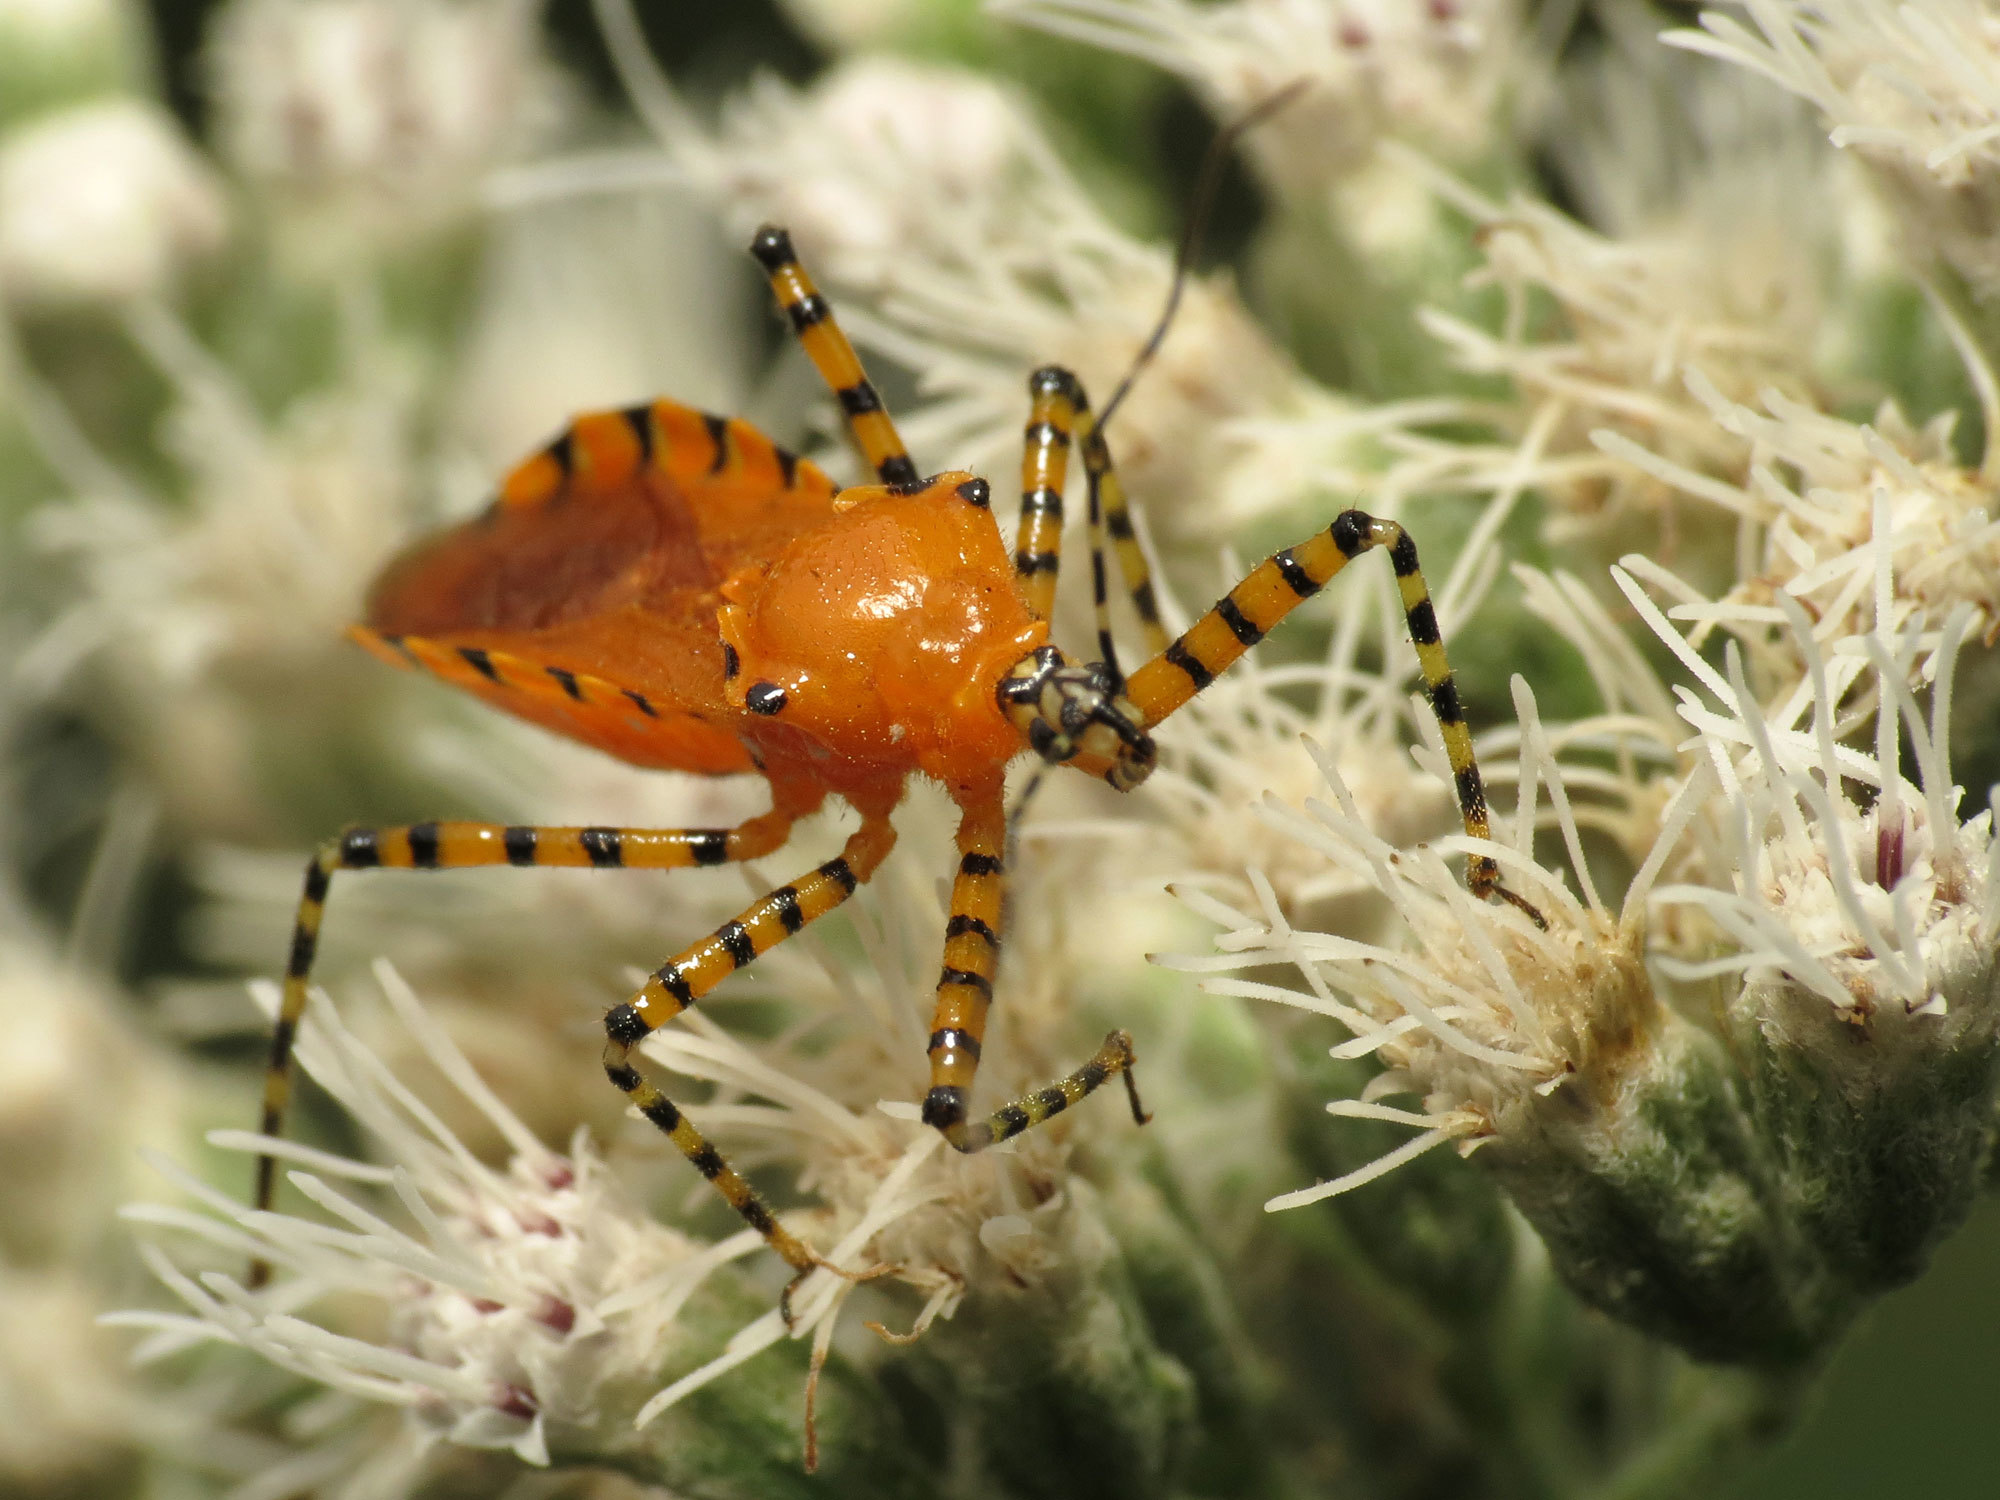 Image of Orange Assassin Bug